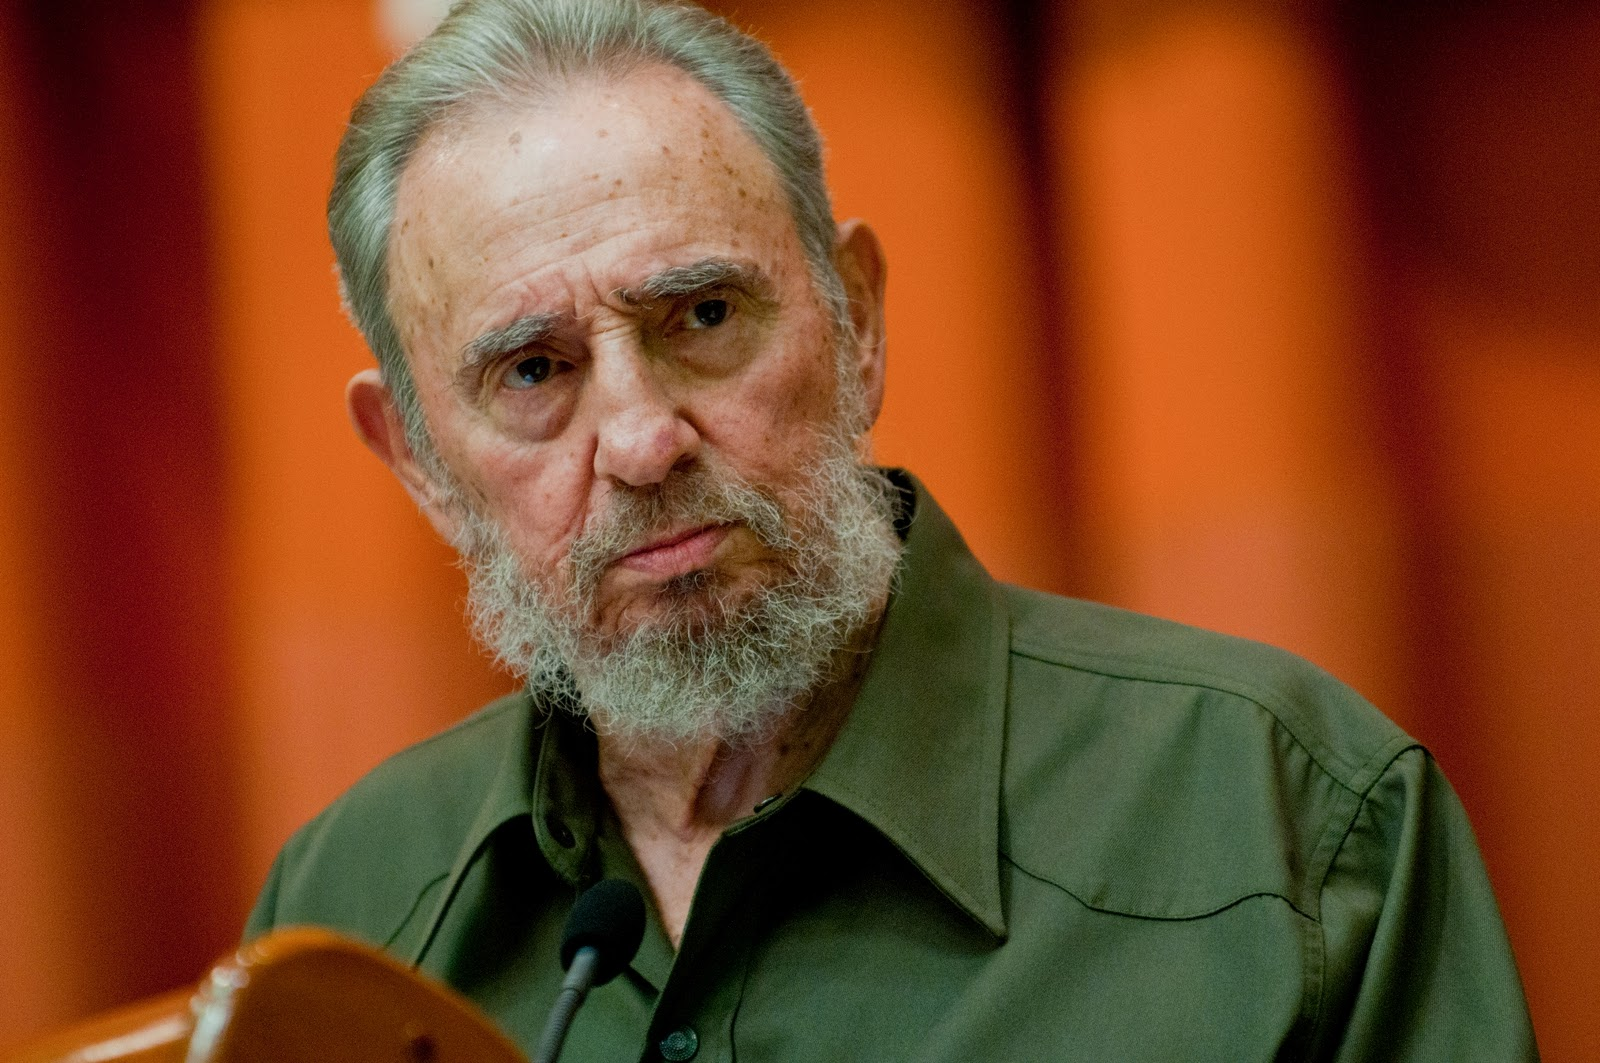 fidel castro says us owes millions the gazette review fidel